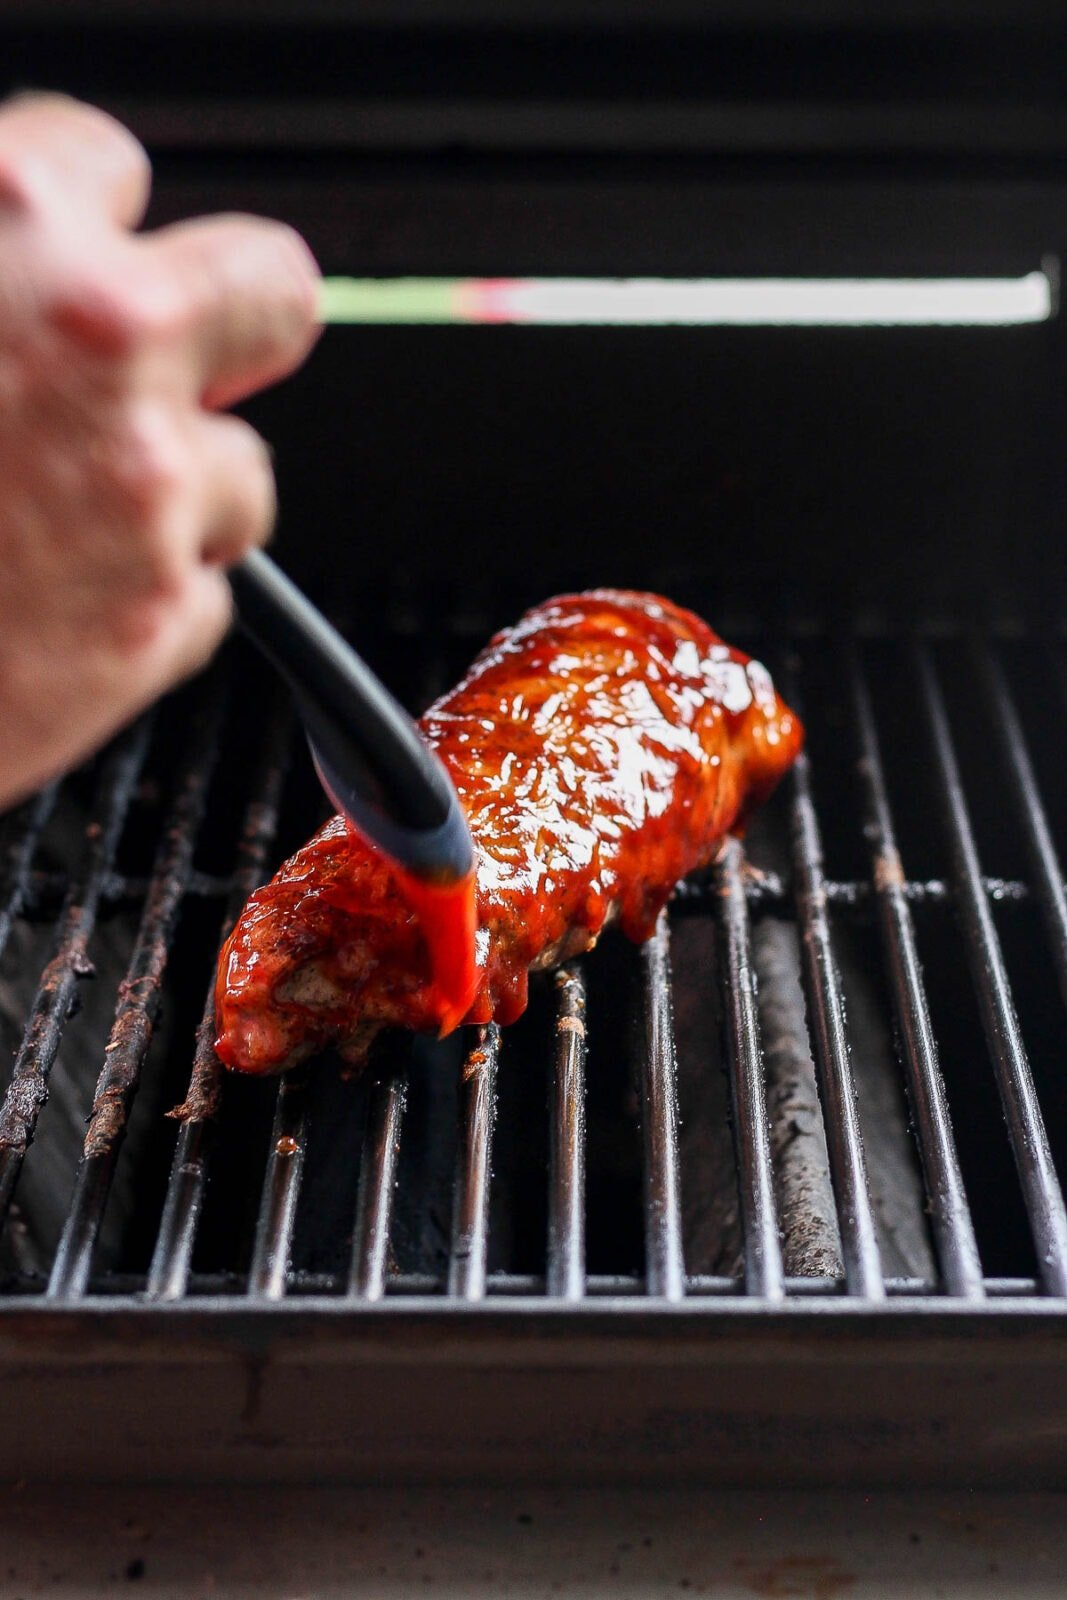 Pork tenderloin on a grill being brushed with excess marinade.